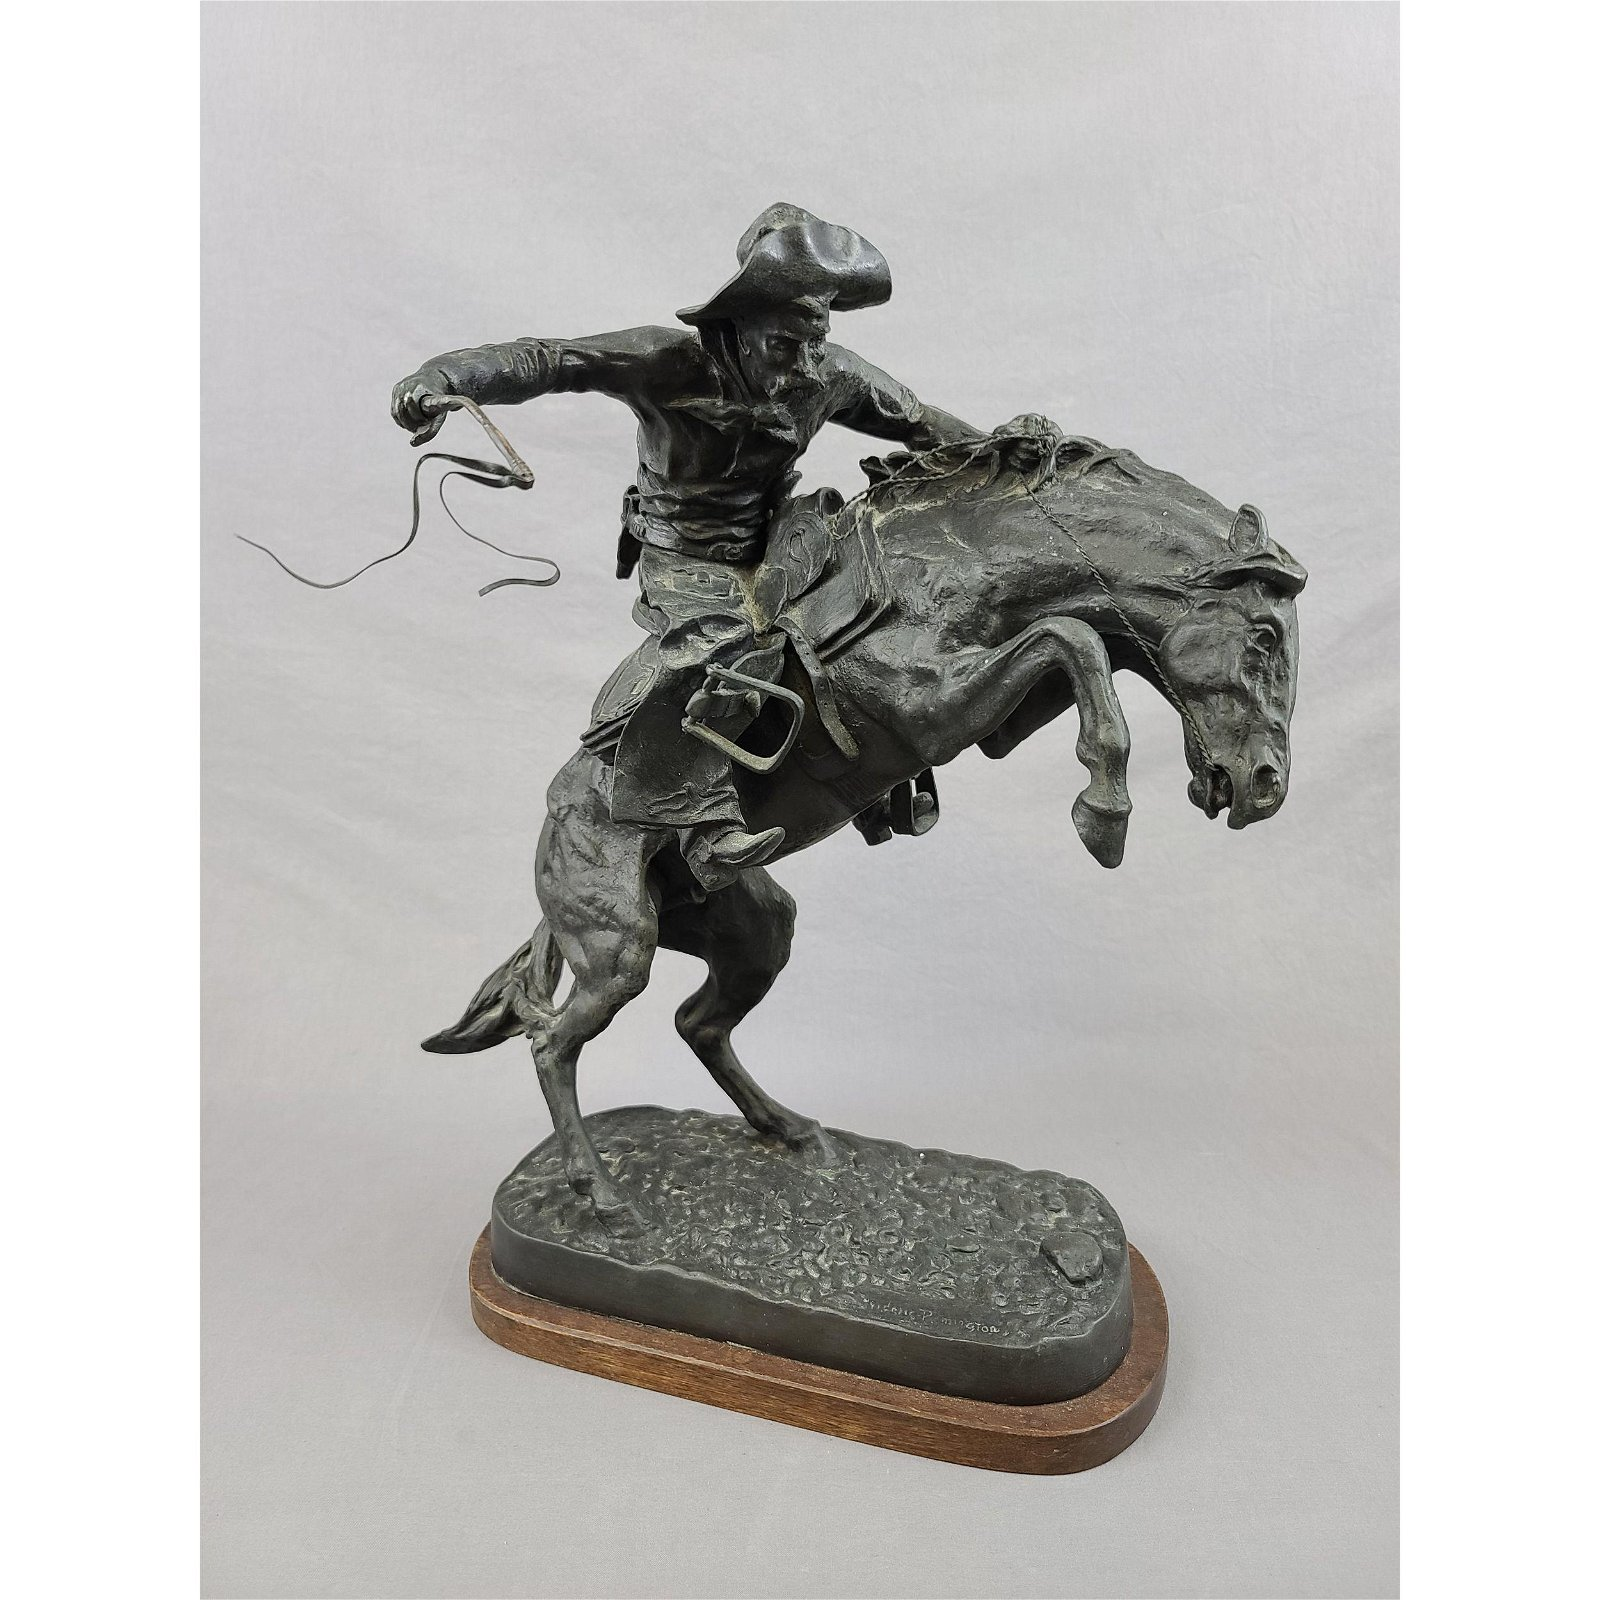 "REPLICA ""THE BRONCO BUSTER"" 1978 BRONZE SCULPTURE"